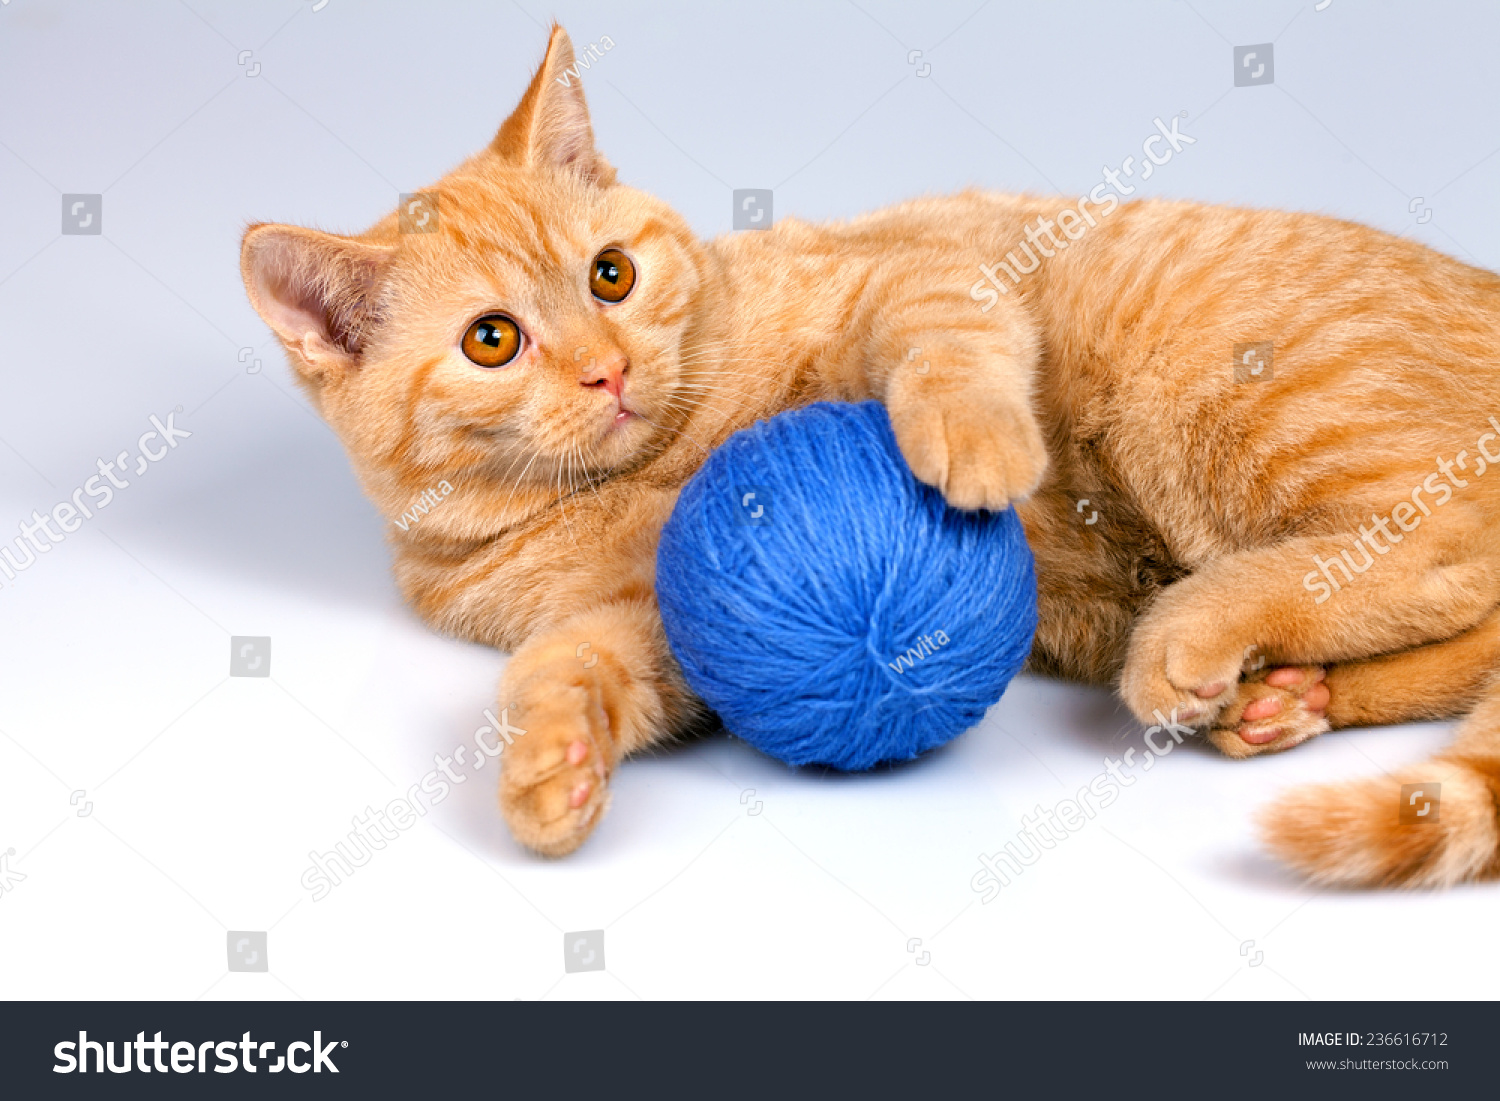 Cute Kitten Playing Clew Yarn Stock Photo 236616712 ...